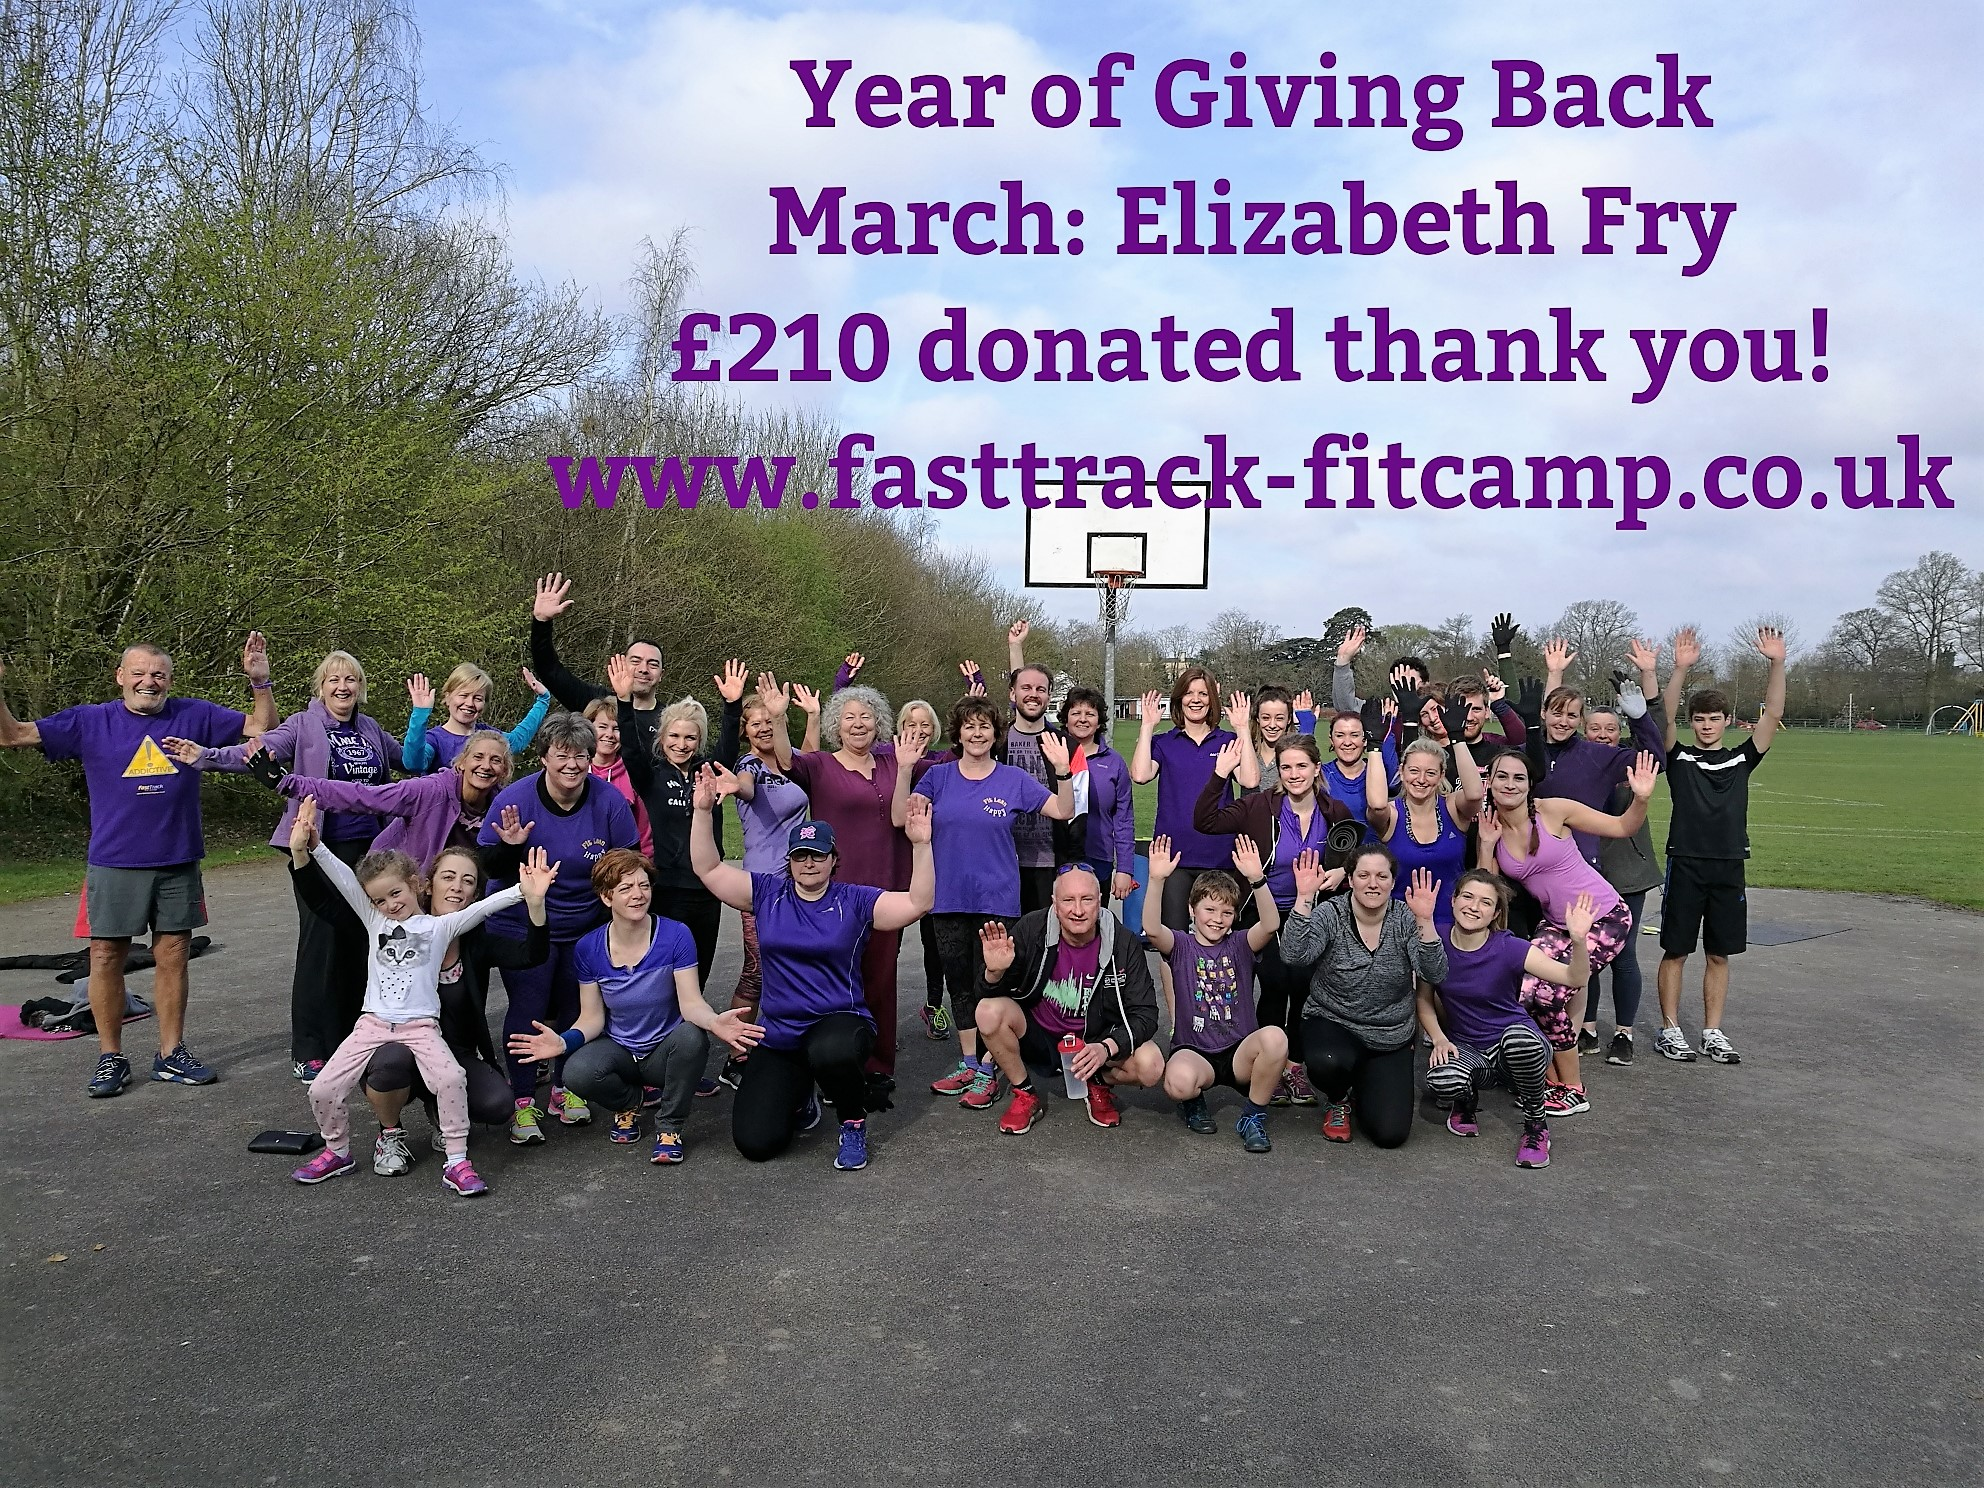 FastTrack Fit Camp raise money for Elizabeth Fry Charity!